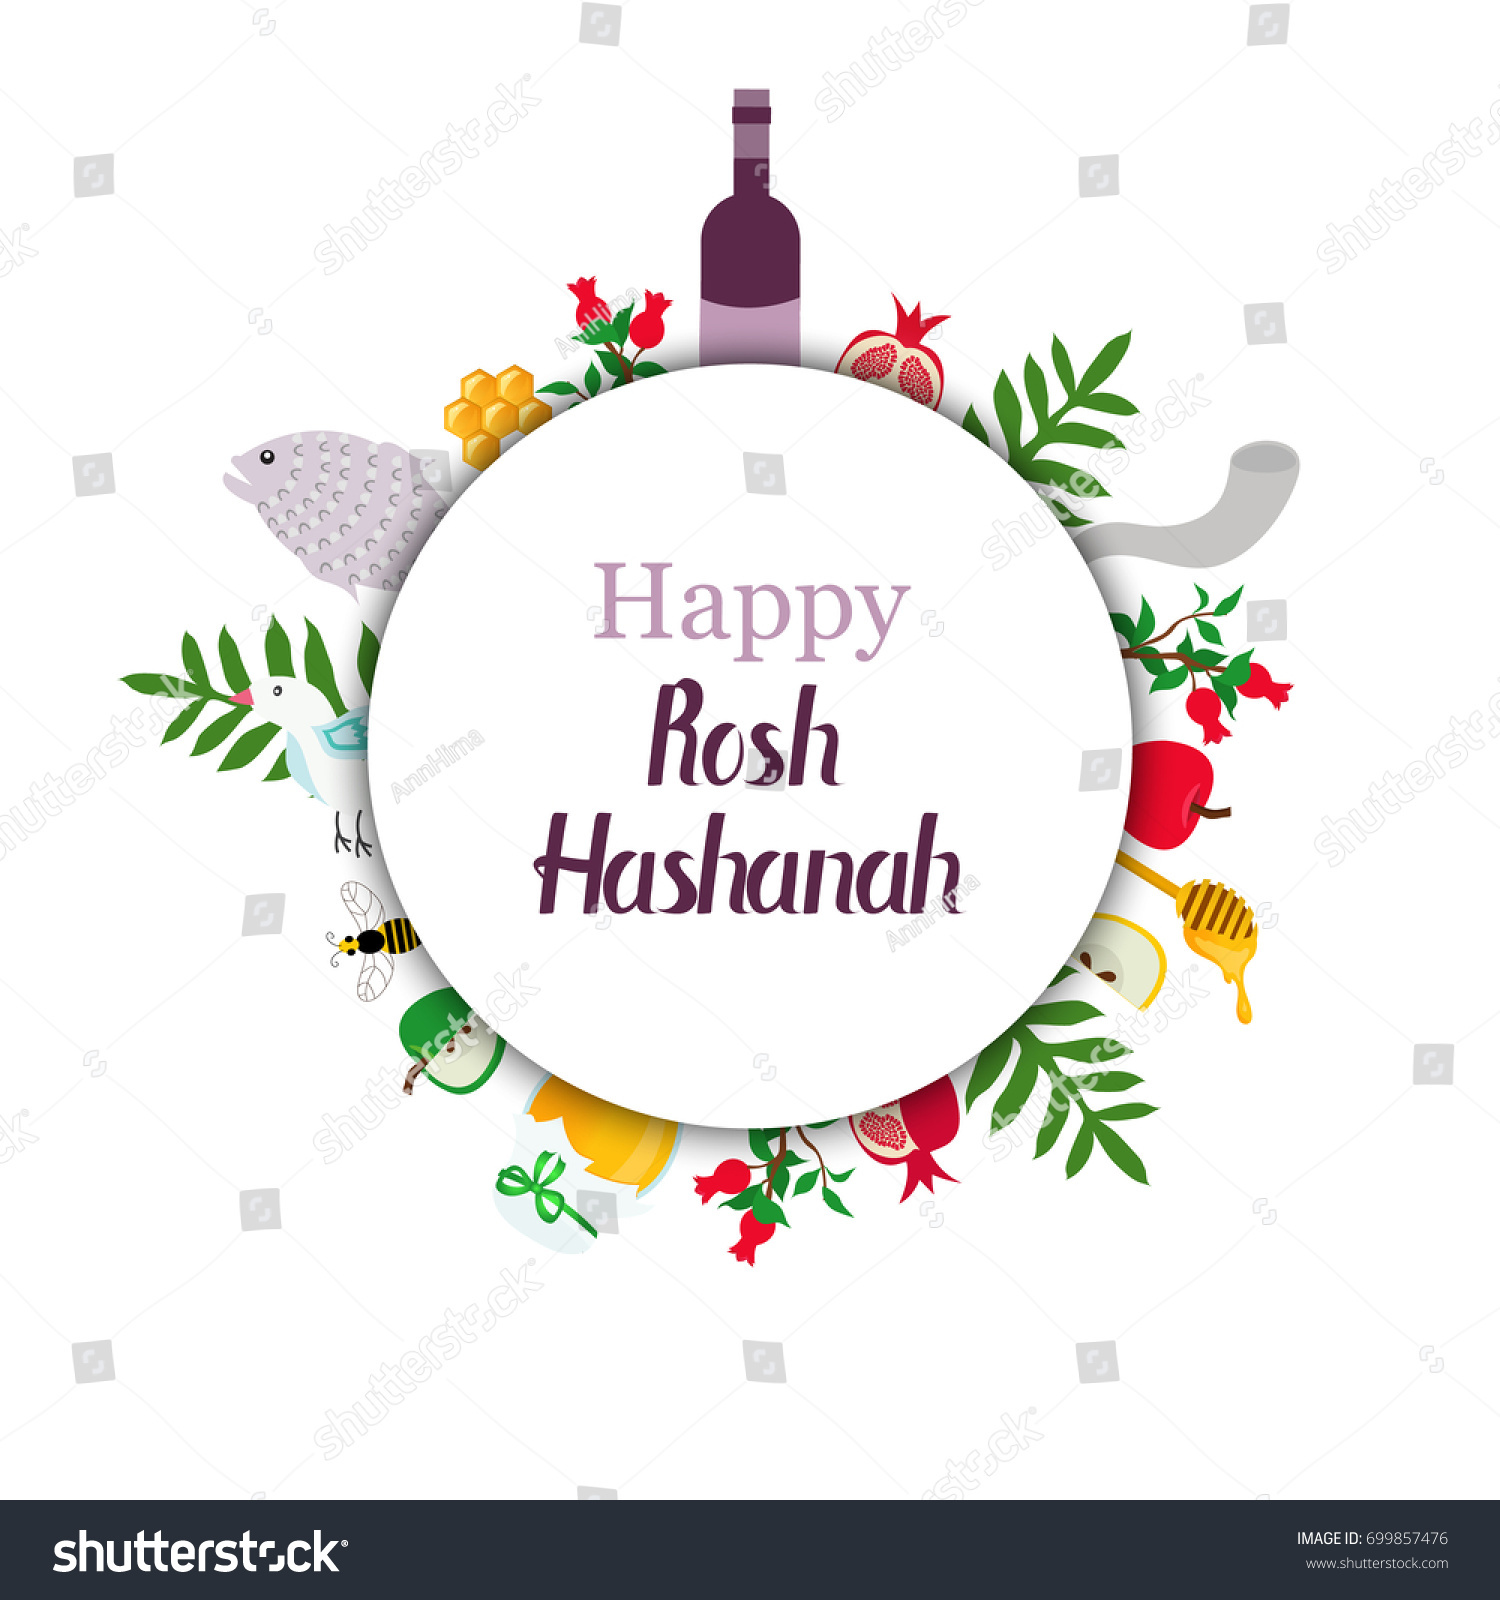 Greeting card jewish new year traditional stock vector 699857476 greeting card jewish new year traditional stock vector 699857476 shutterstock m4hsunfo